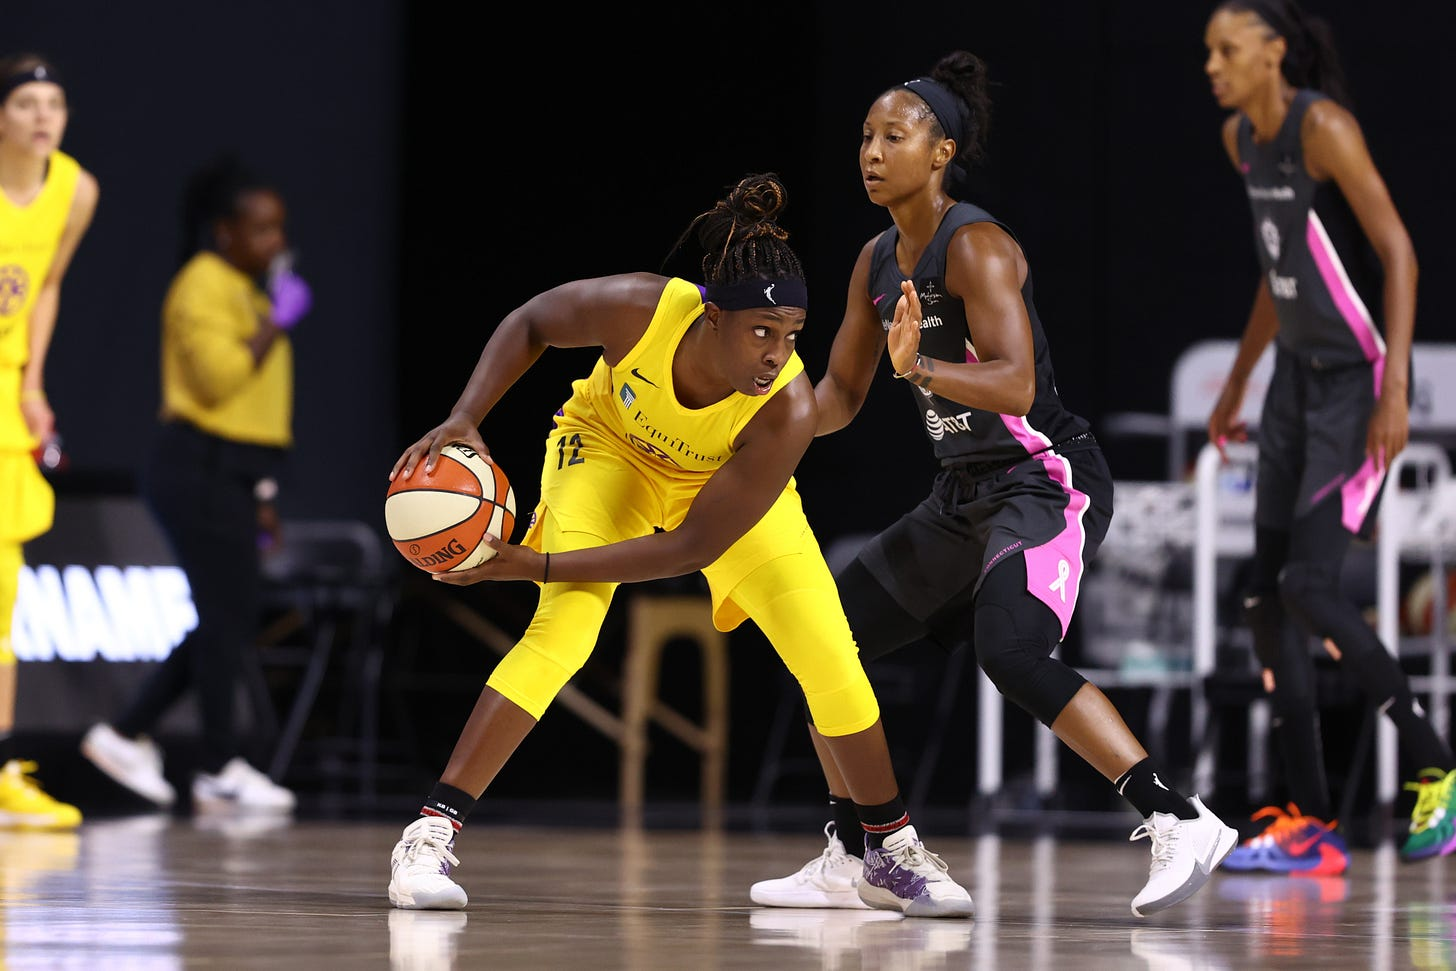 PALMETTO, FL- AUGUST 28: Chelsea Gray #12 of the Los Angeles Sparks handles the ball against the Connecticut Sun on August 28, 2020 at Feld Entertainment Center in Palmetto, Florida.